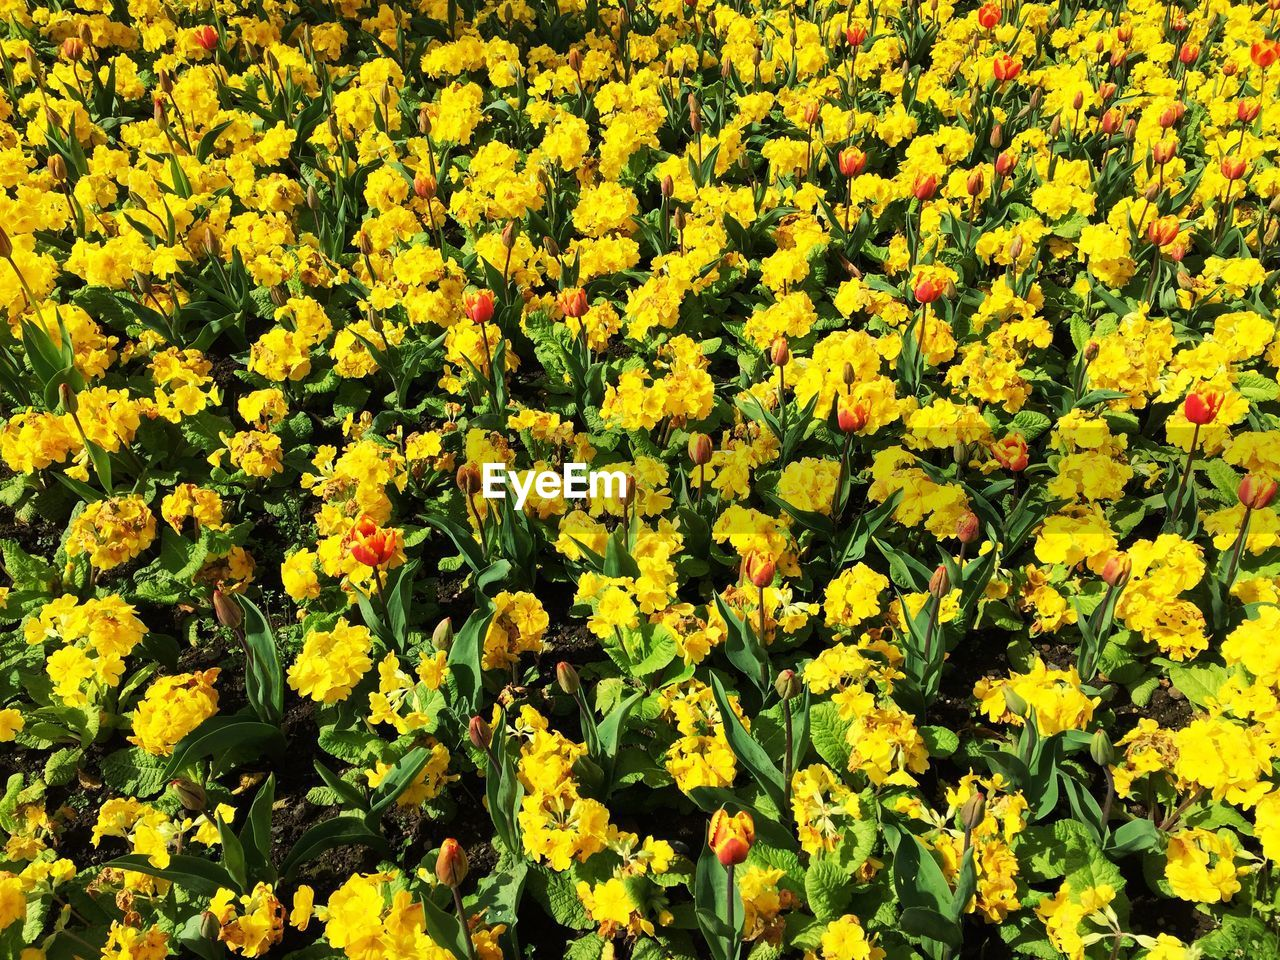 flower, flowering plant, beauty in nature, yellow, growth, fragility, vulnerability, freshness, plant, abundance, field, full frame, land, no people, nature, day, flower head, inflorescence, backgrounds, close-up, outdoors, flowerbed, springtime